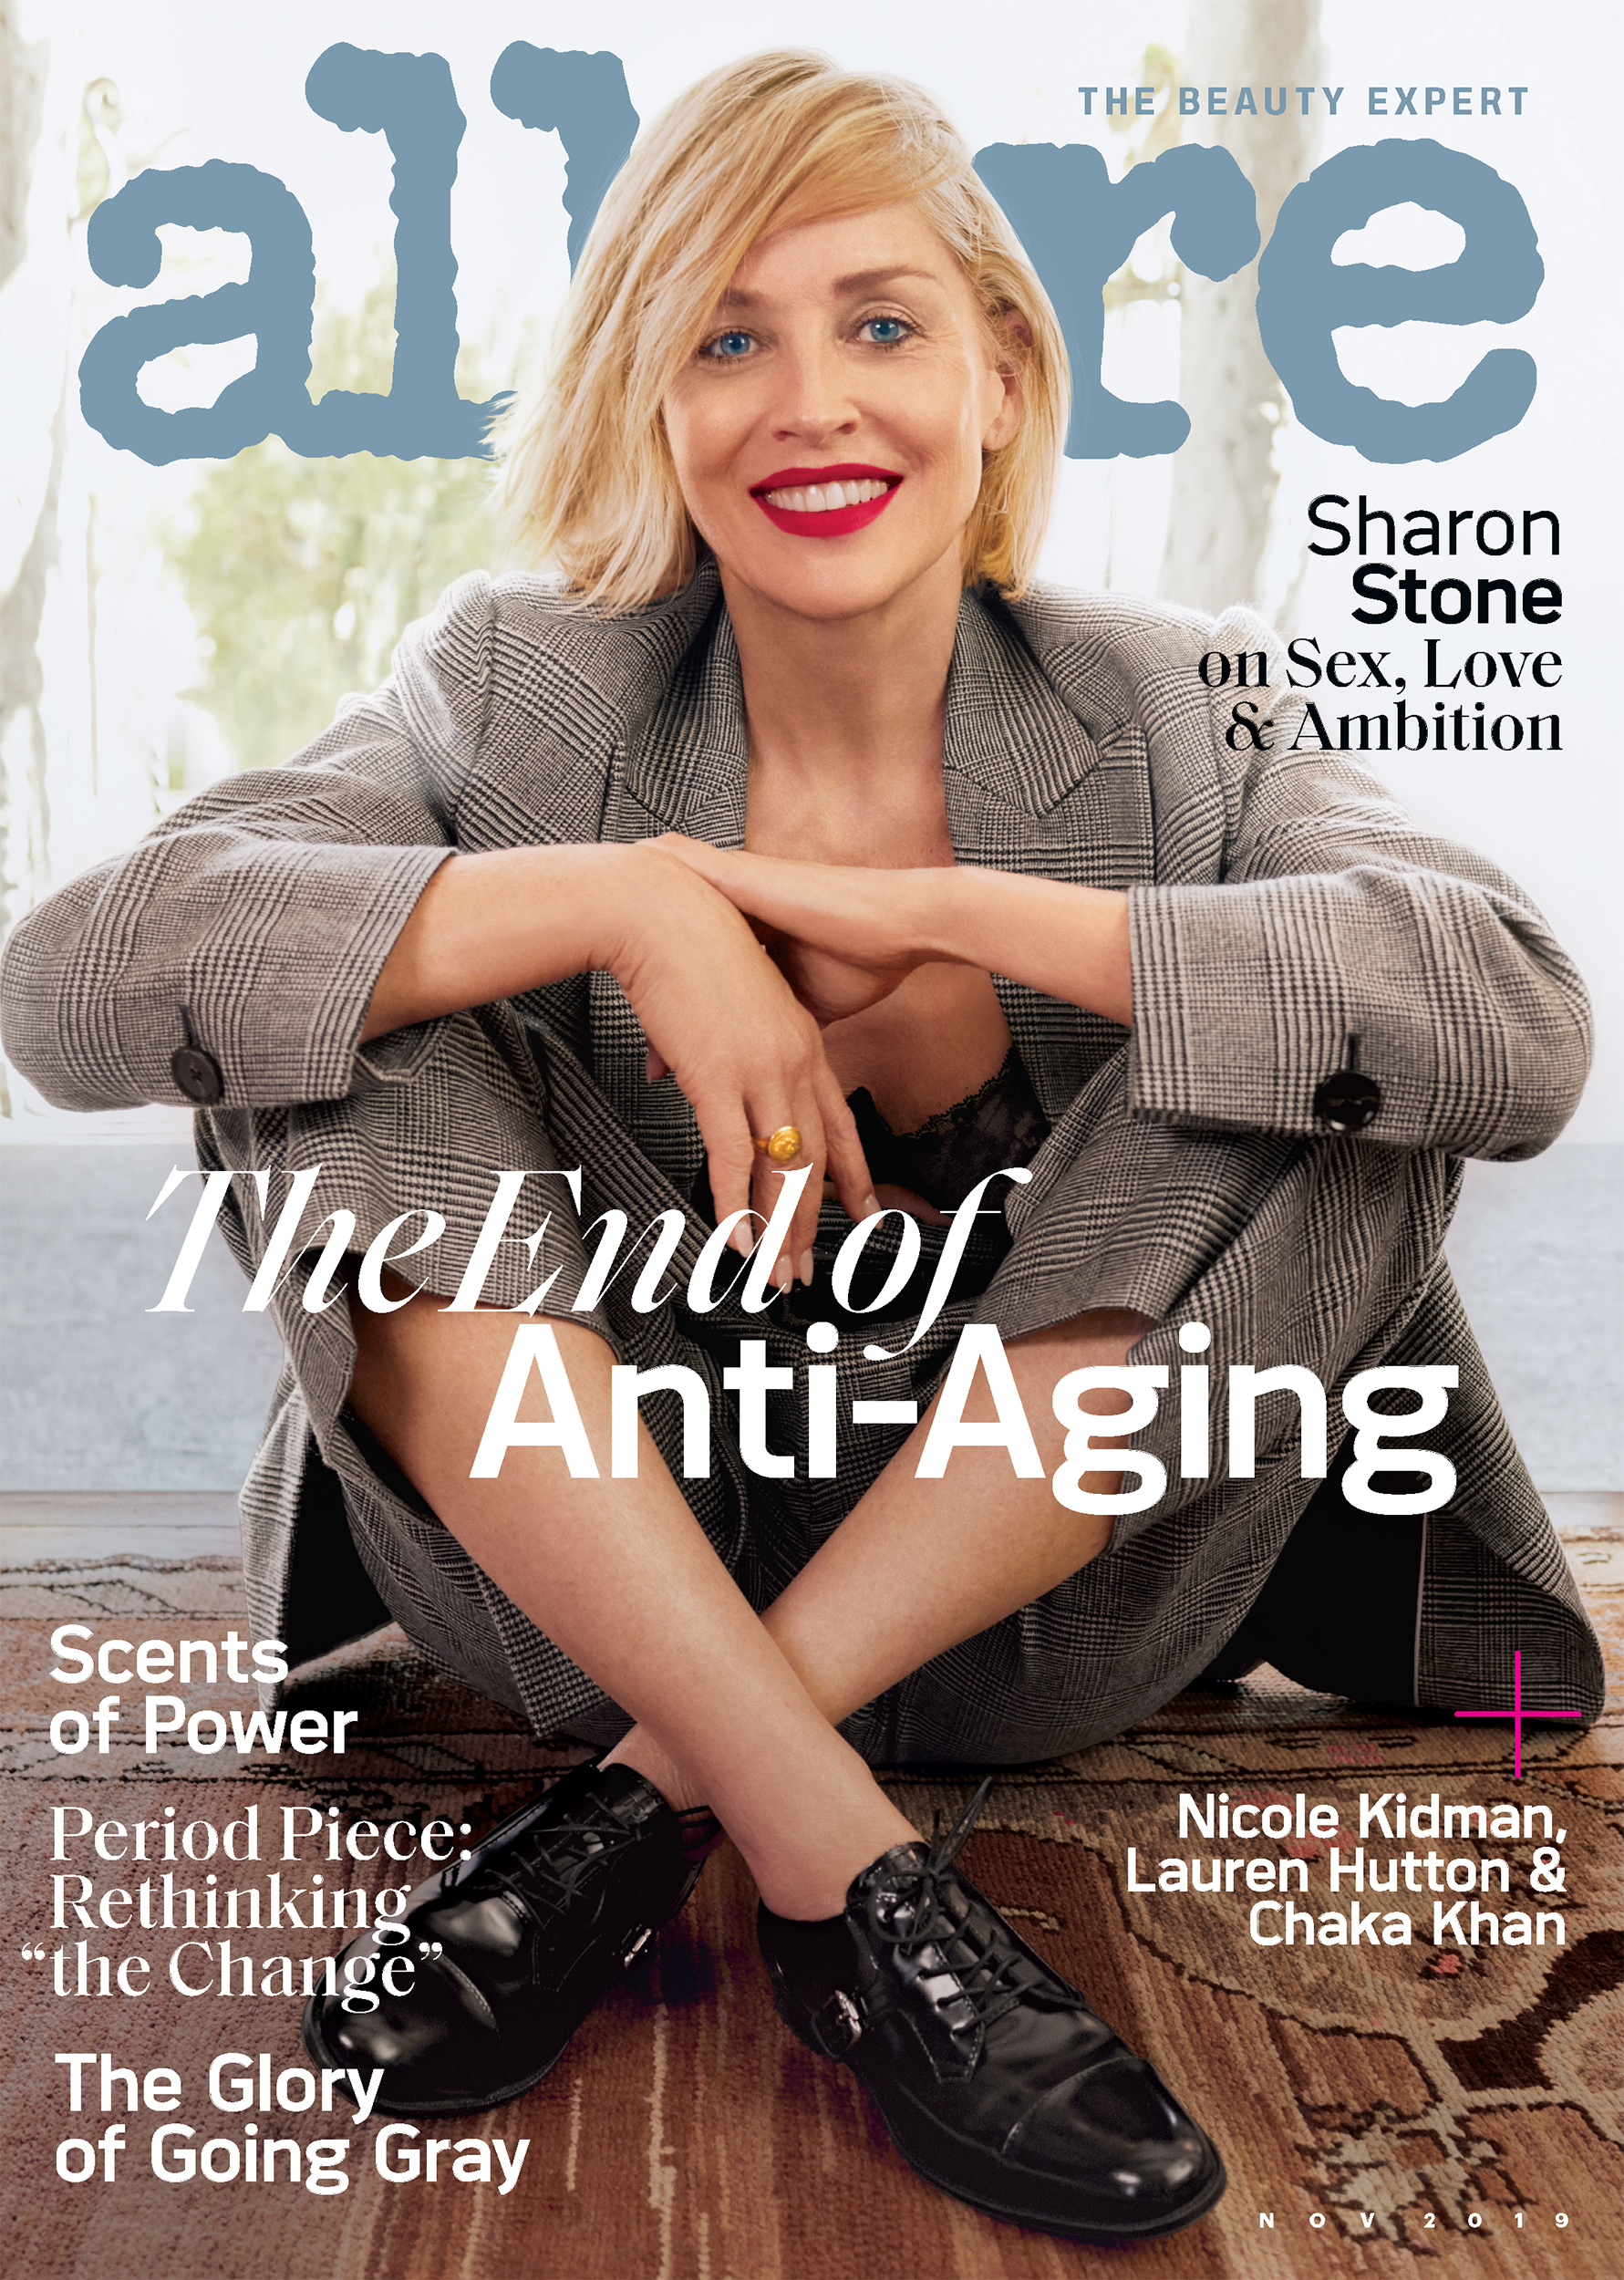 Sharon Stone Talks Beauty And Aging On Cover Of Allure Magazine